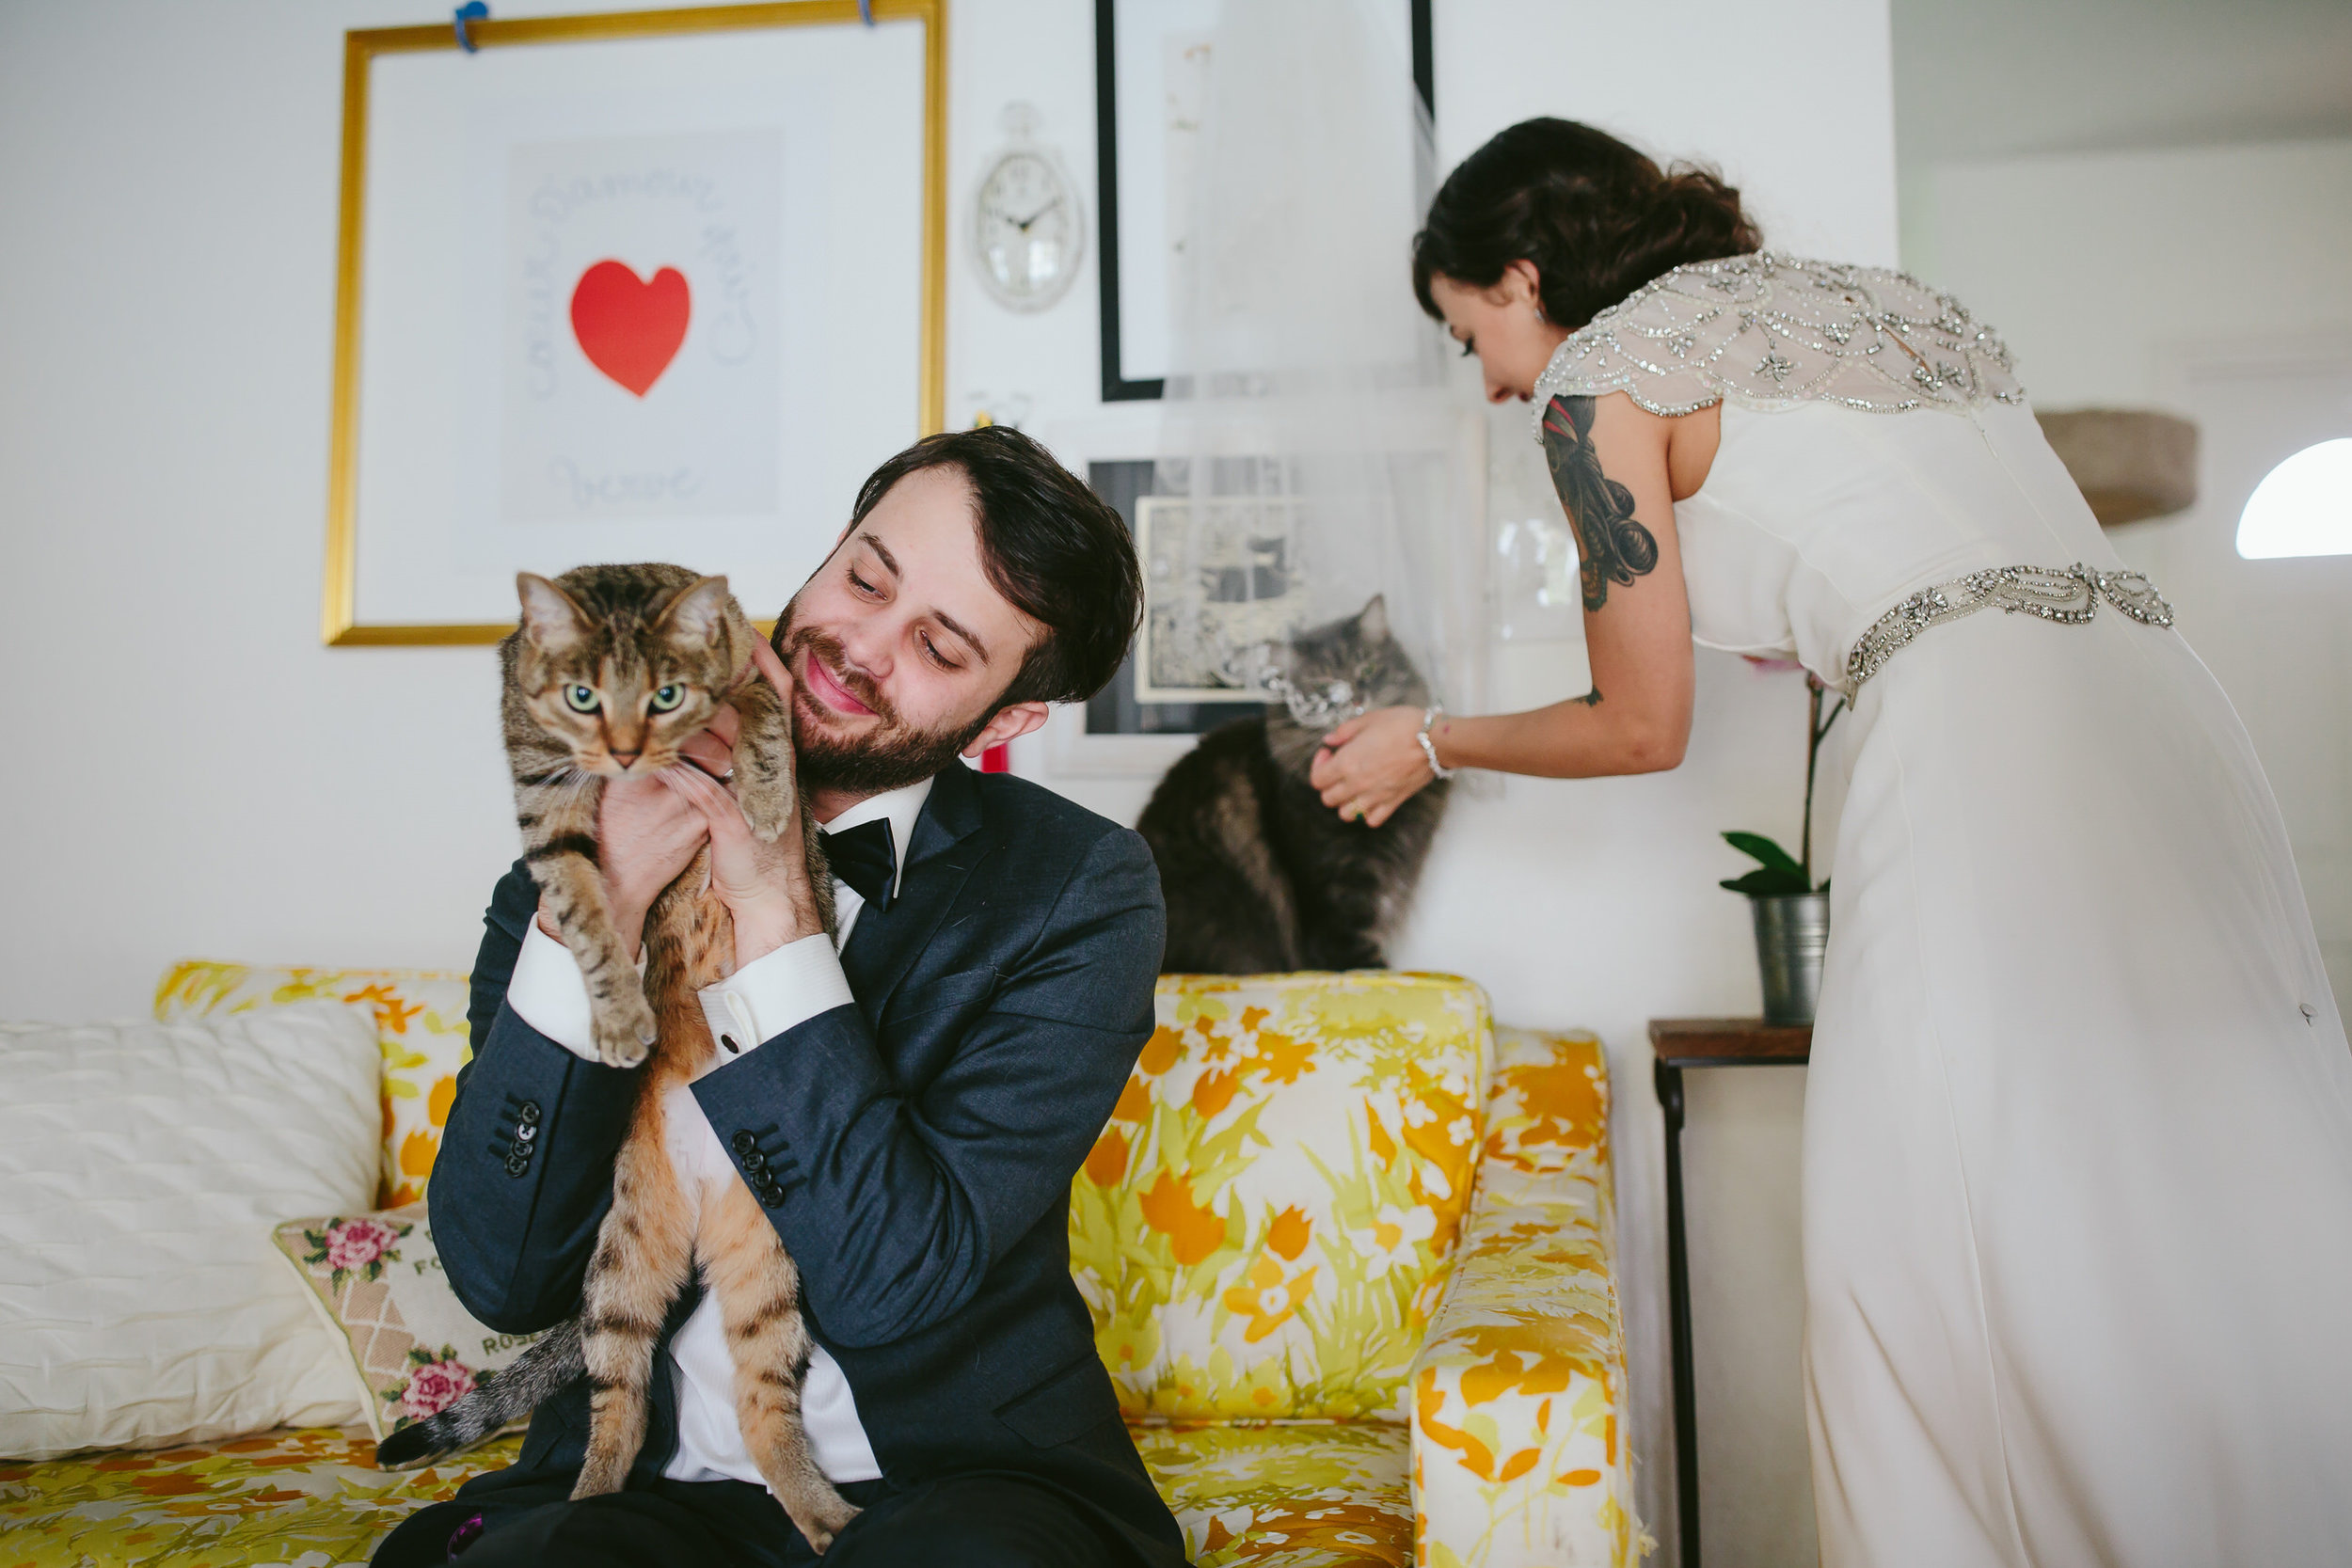 bride_and_groom_cats_in_home_session_wedding_fort_lauderdale_photographer_steph_lynn_photo-83.jpg